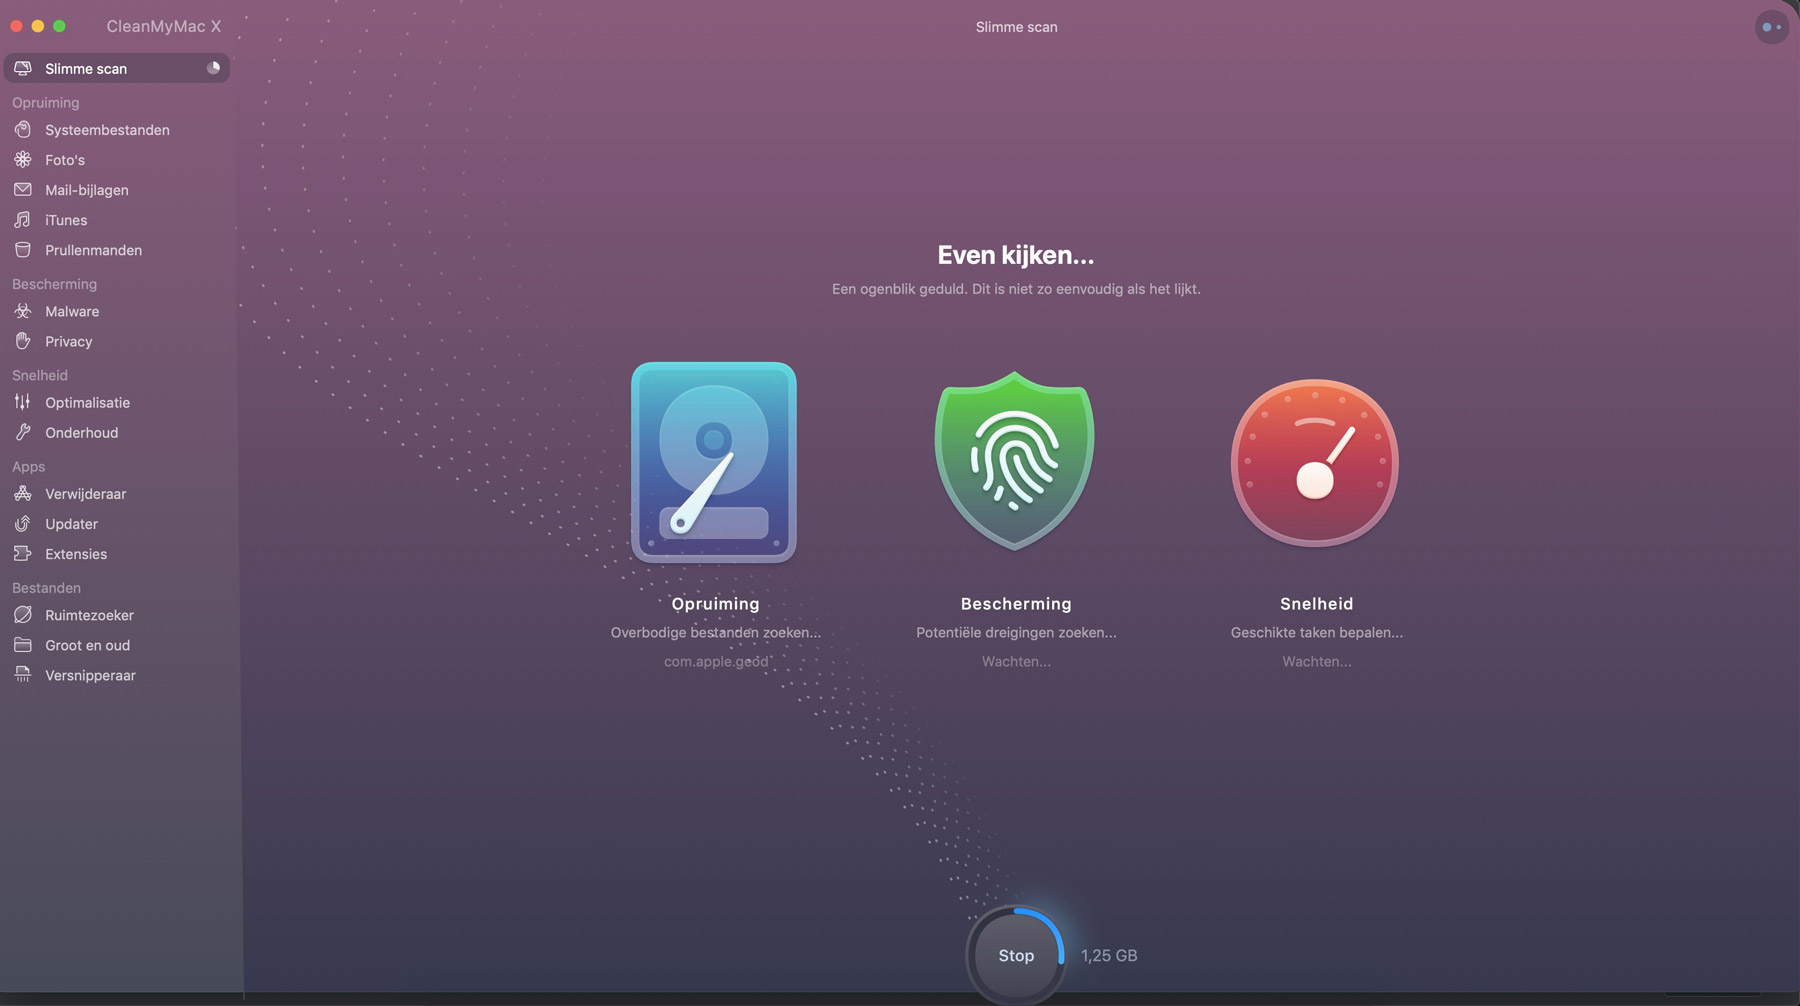 CleanMyMac scan interface